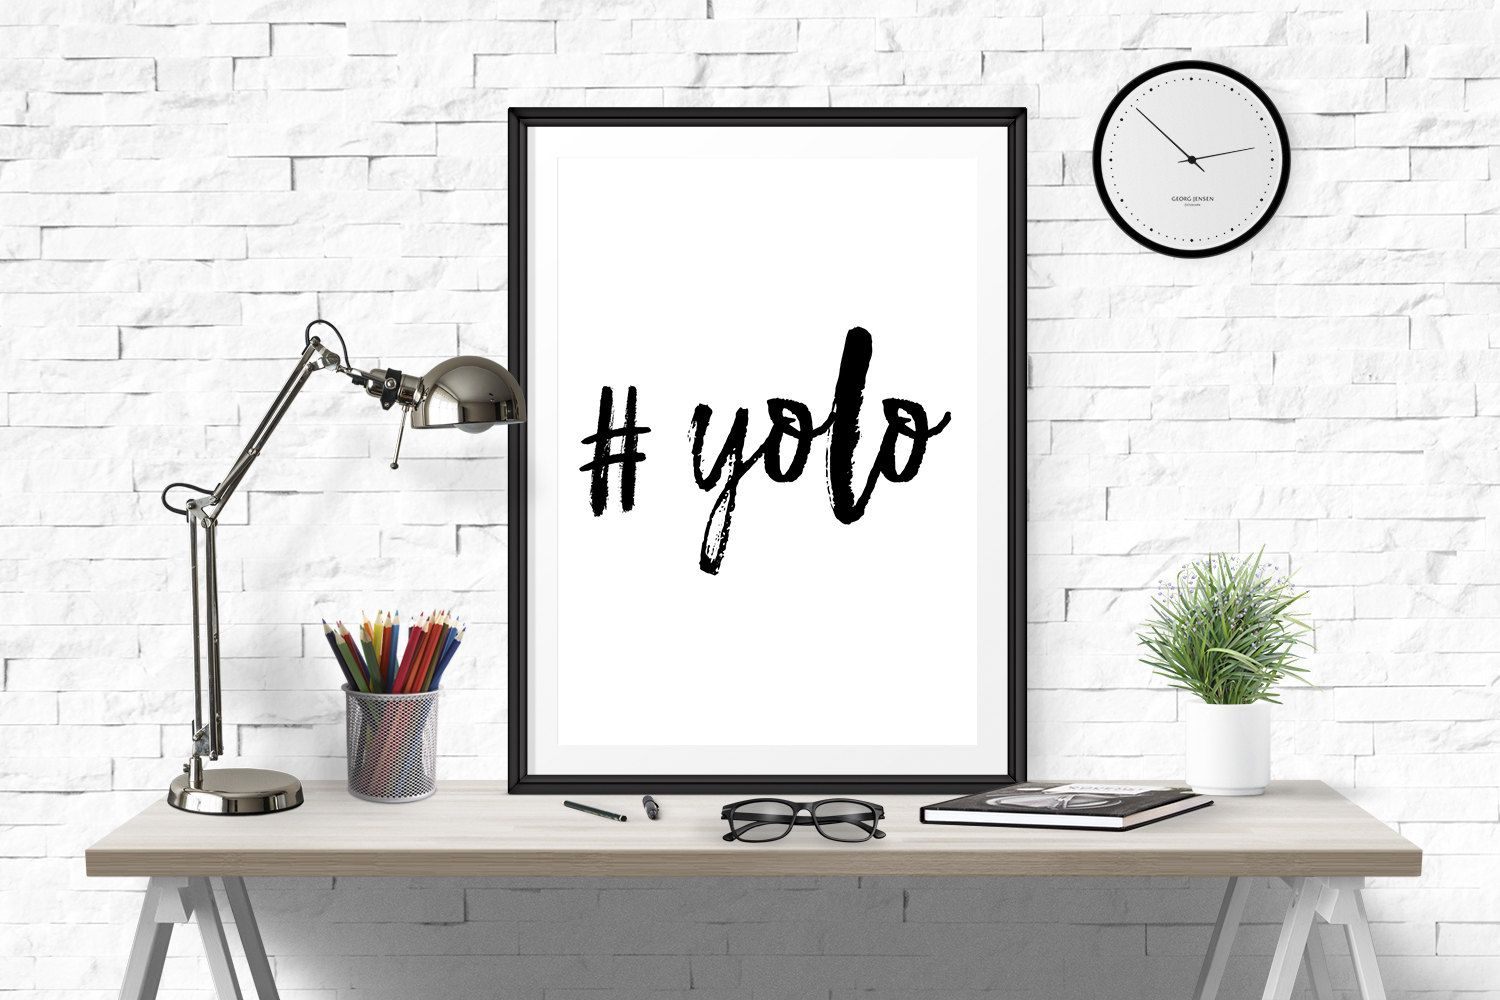 Yolo print, Yolo, Hashtag Yolo, prints for teens, Art Print, apartment decor, Yolo poster, Hashtag Print, Watercolor, Famous Trendy Quote by RapidPrint on Etsy